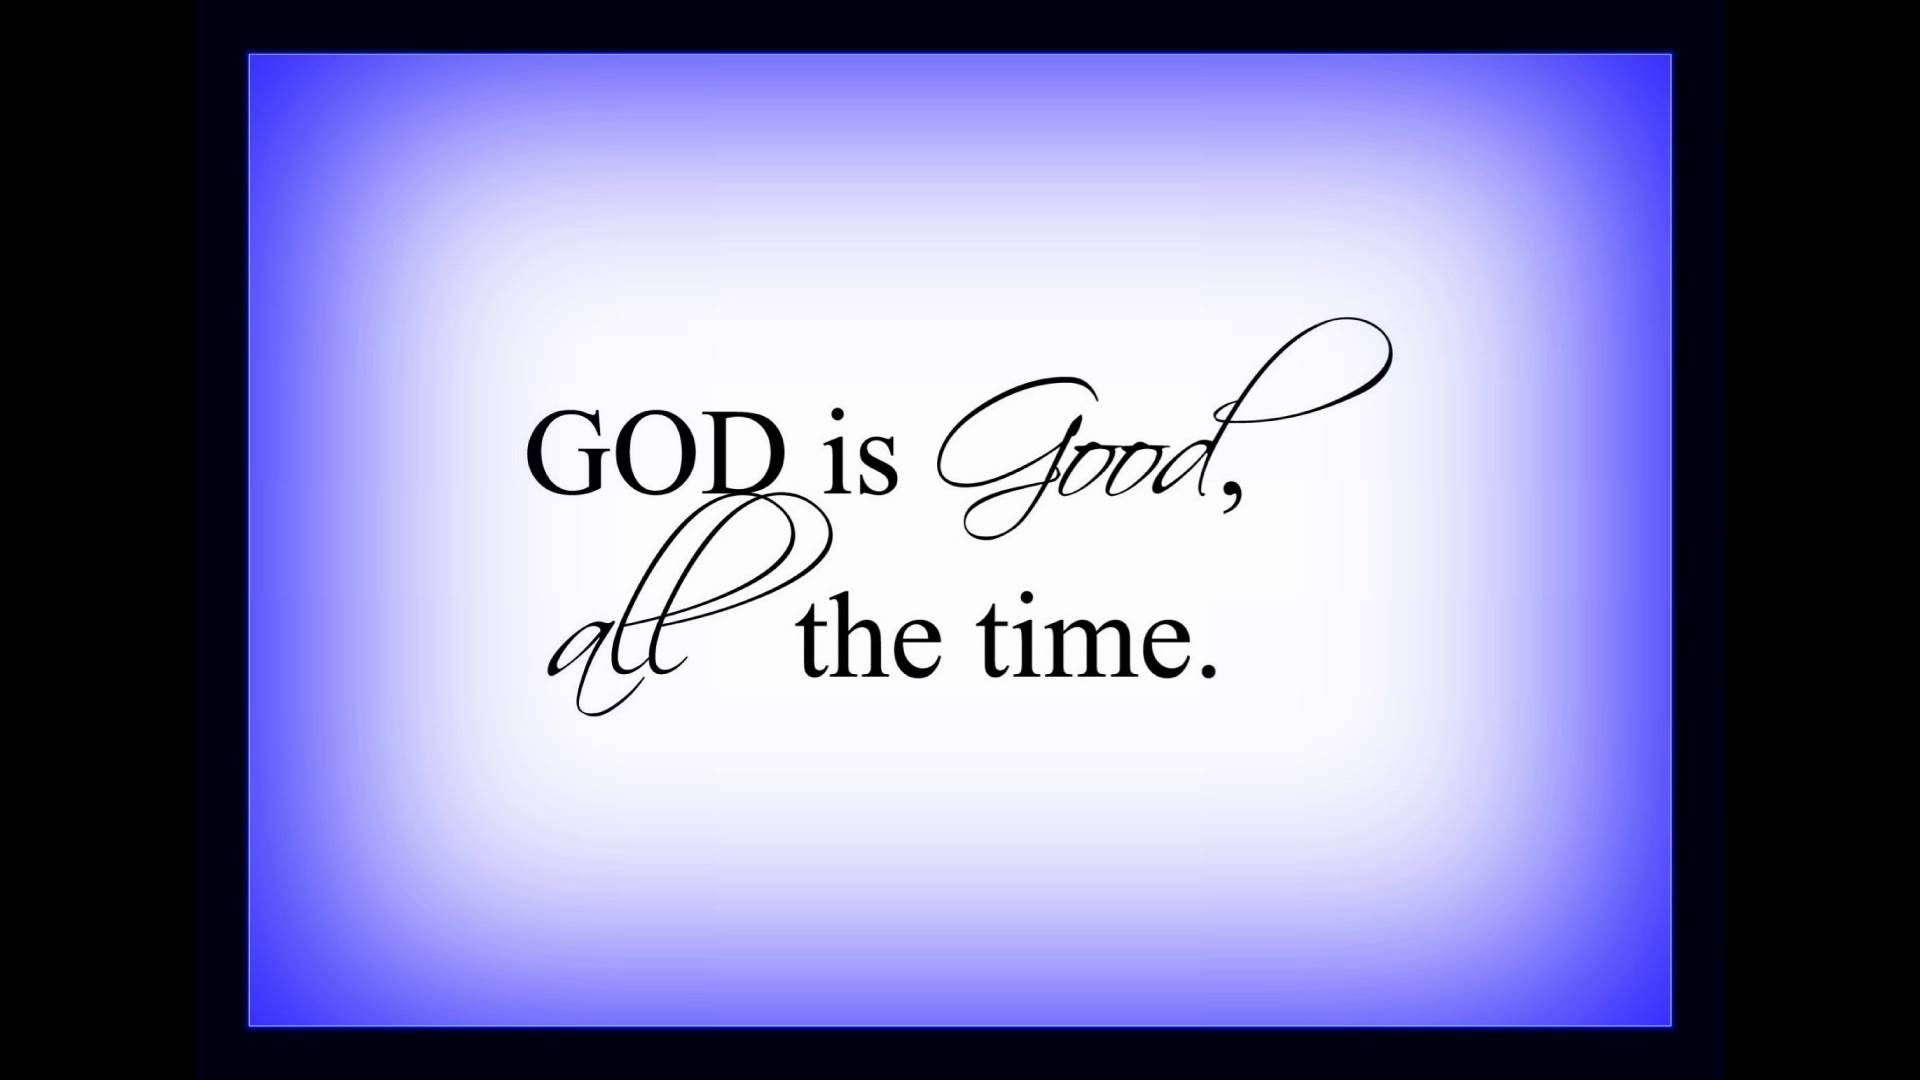 God Quotes Hd Wallpaper Download God Is Good All The Time Wallpaper Gallery